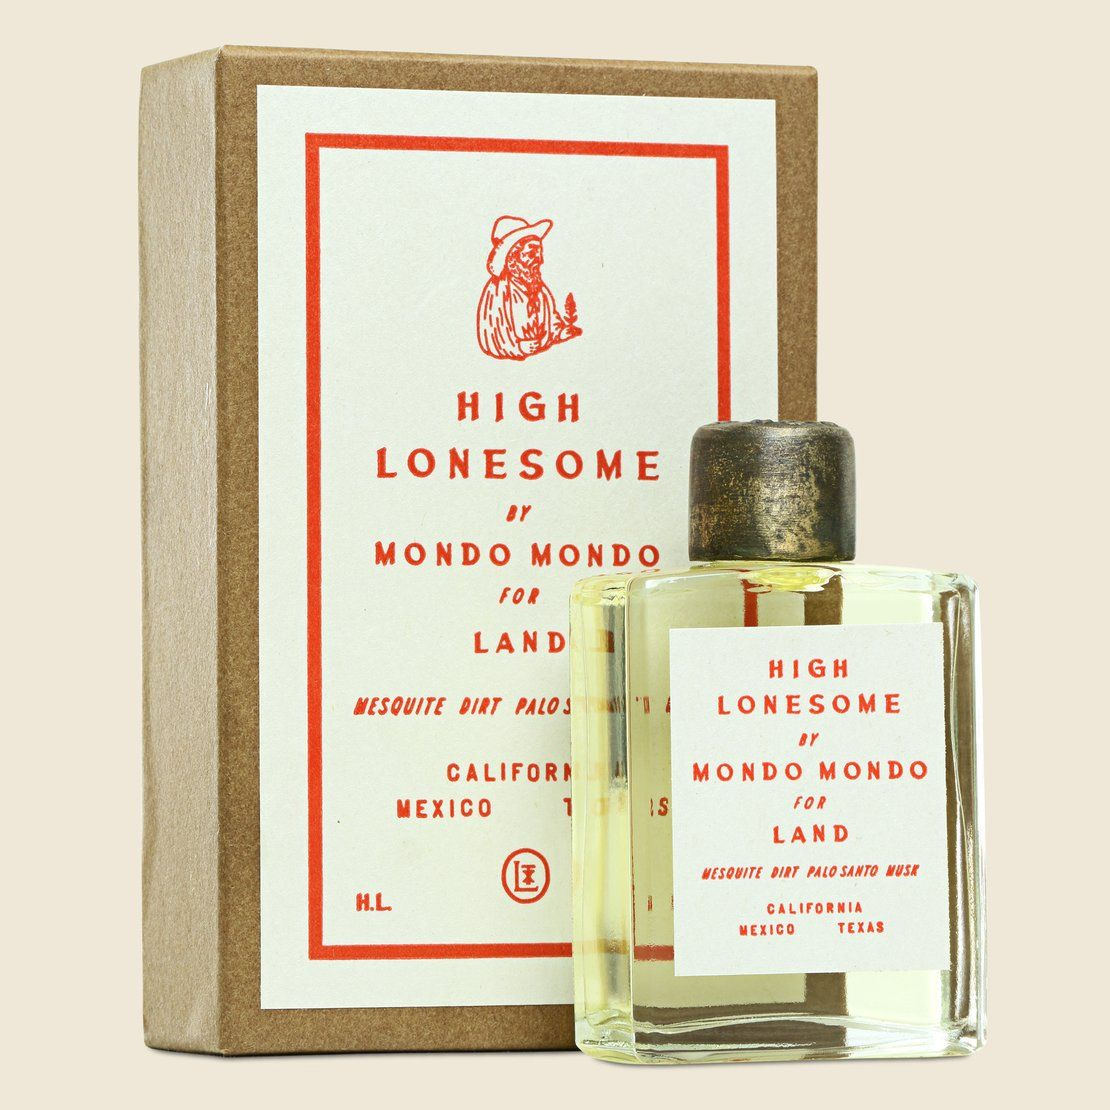 High Lonesome by Mondo Mondo | Design packaging, Packaging design ...